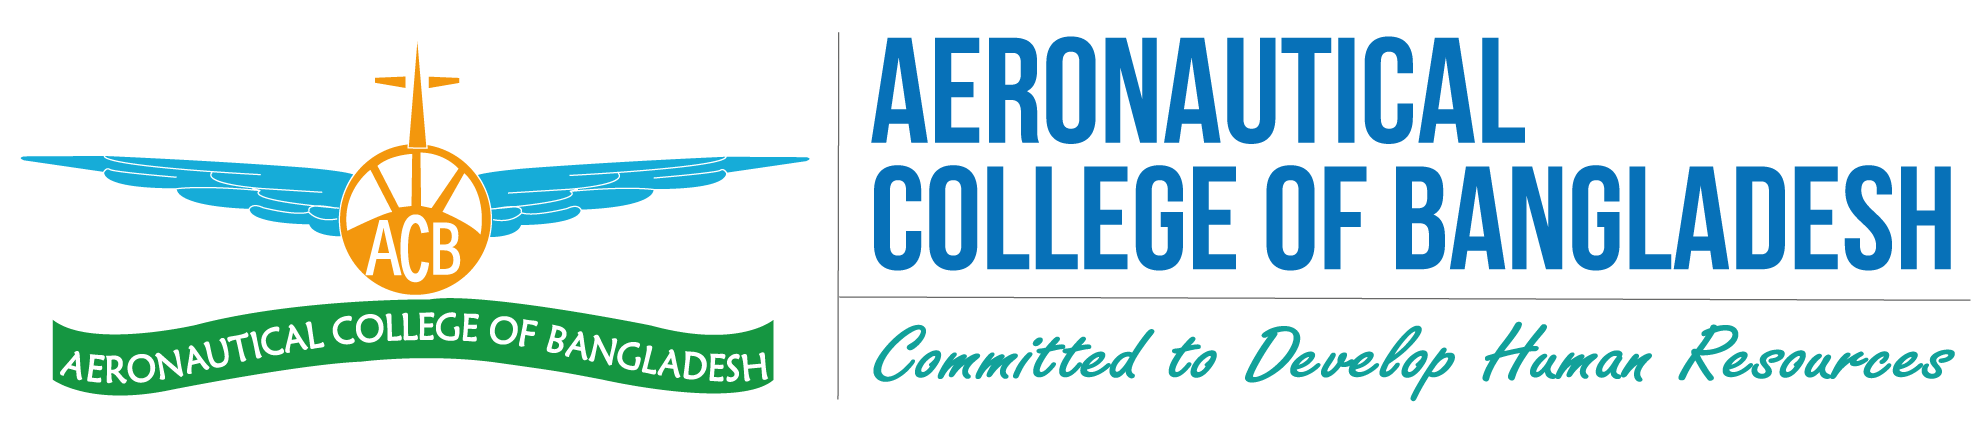 Aeronautical College of Bangladesh